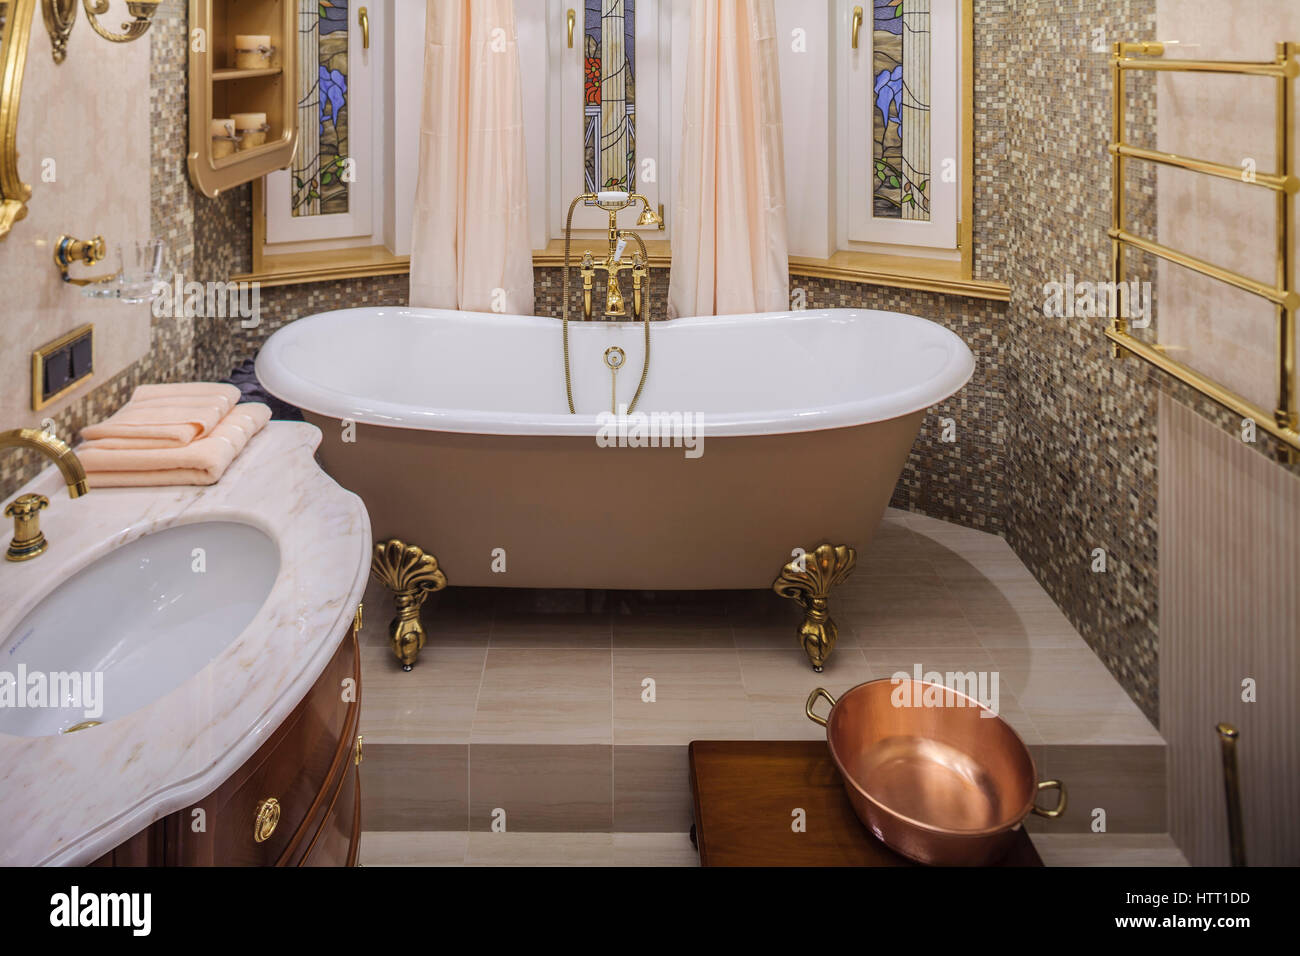 Classic Bathroom Interior, Old Fashioned Bathtub Spa